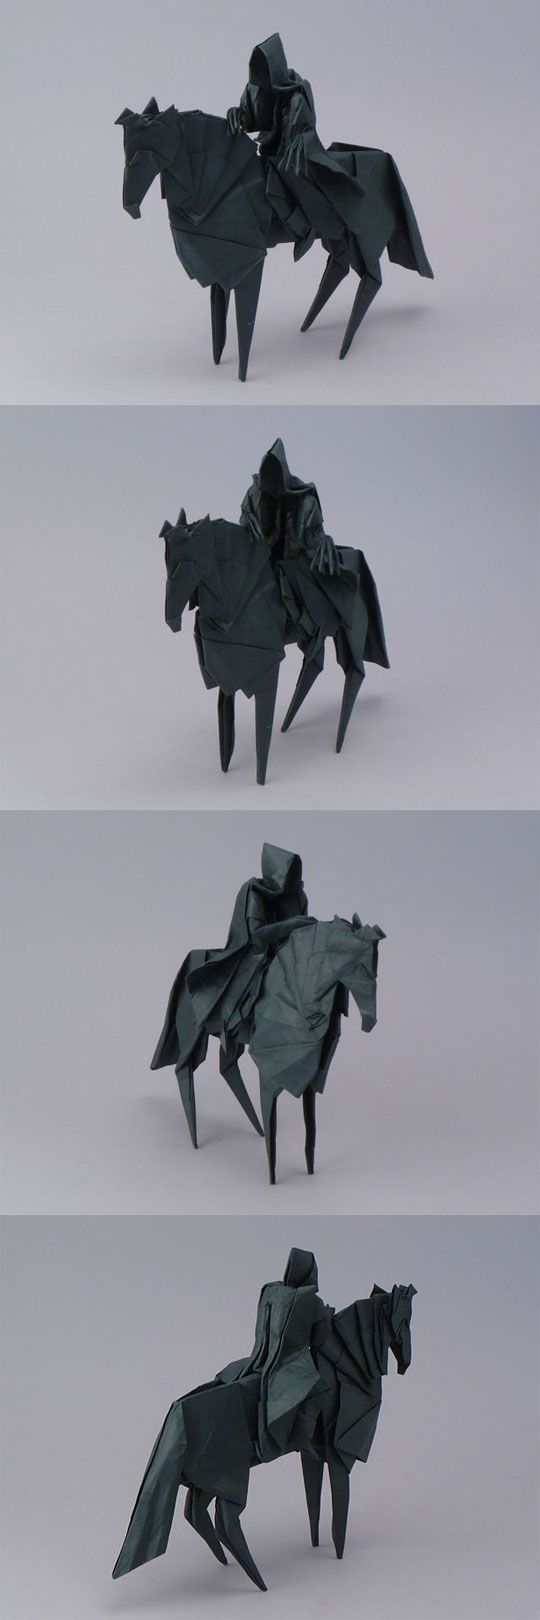 Origami Nazgul. Awesome! I'd make this for you but I'm  pretty sure I'd mess it up. Lol